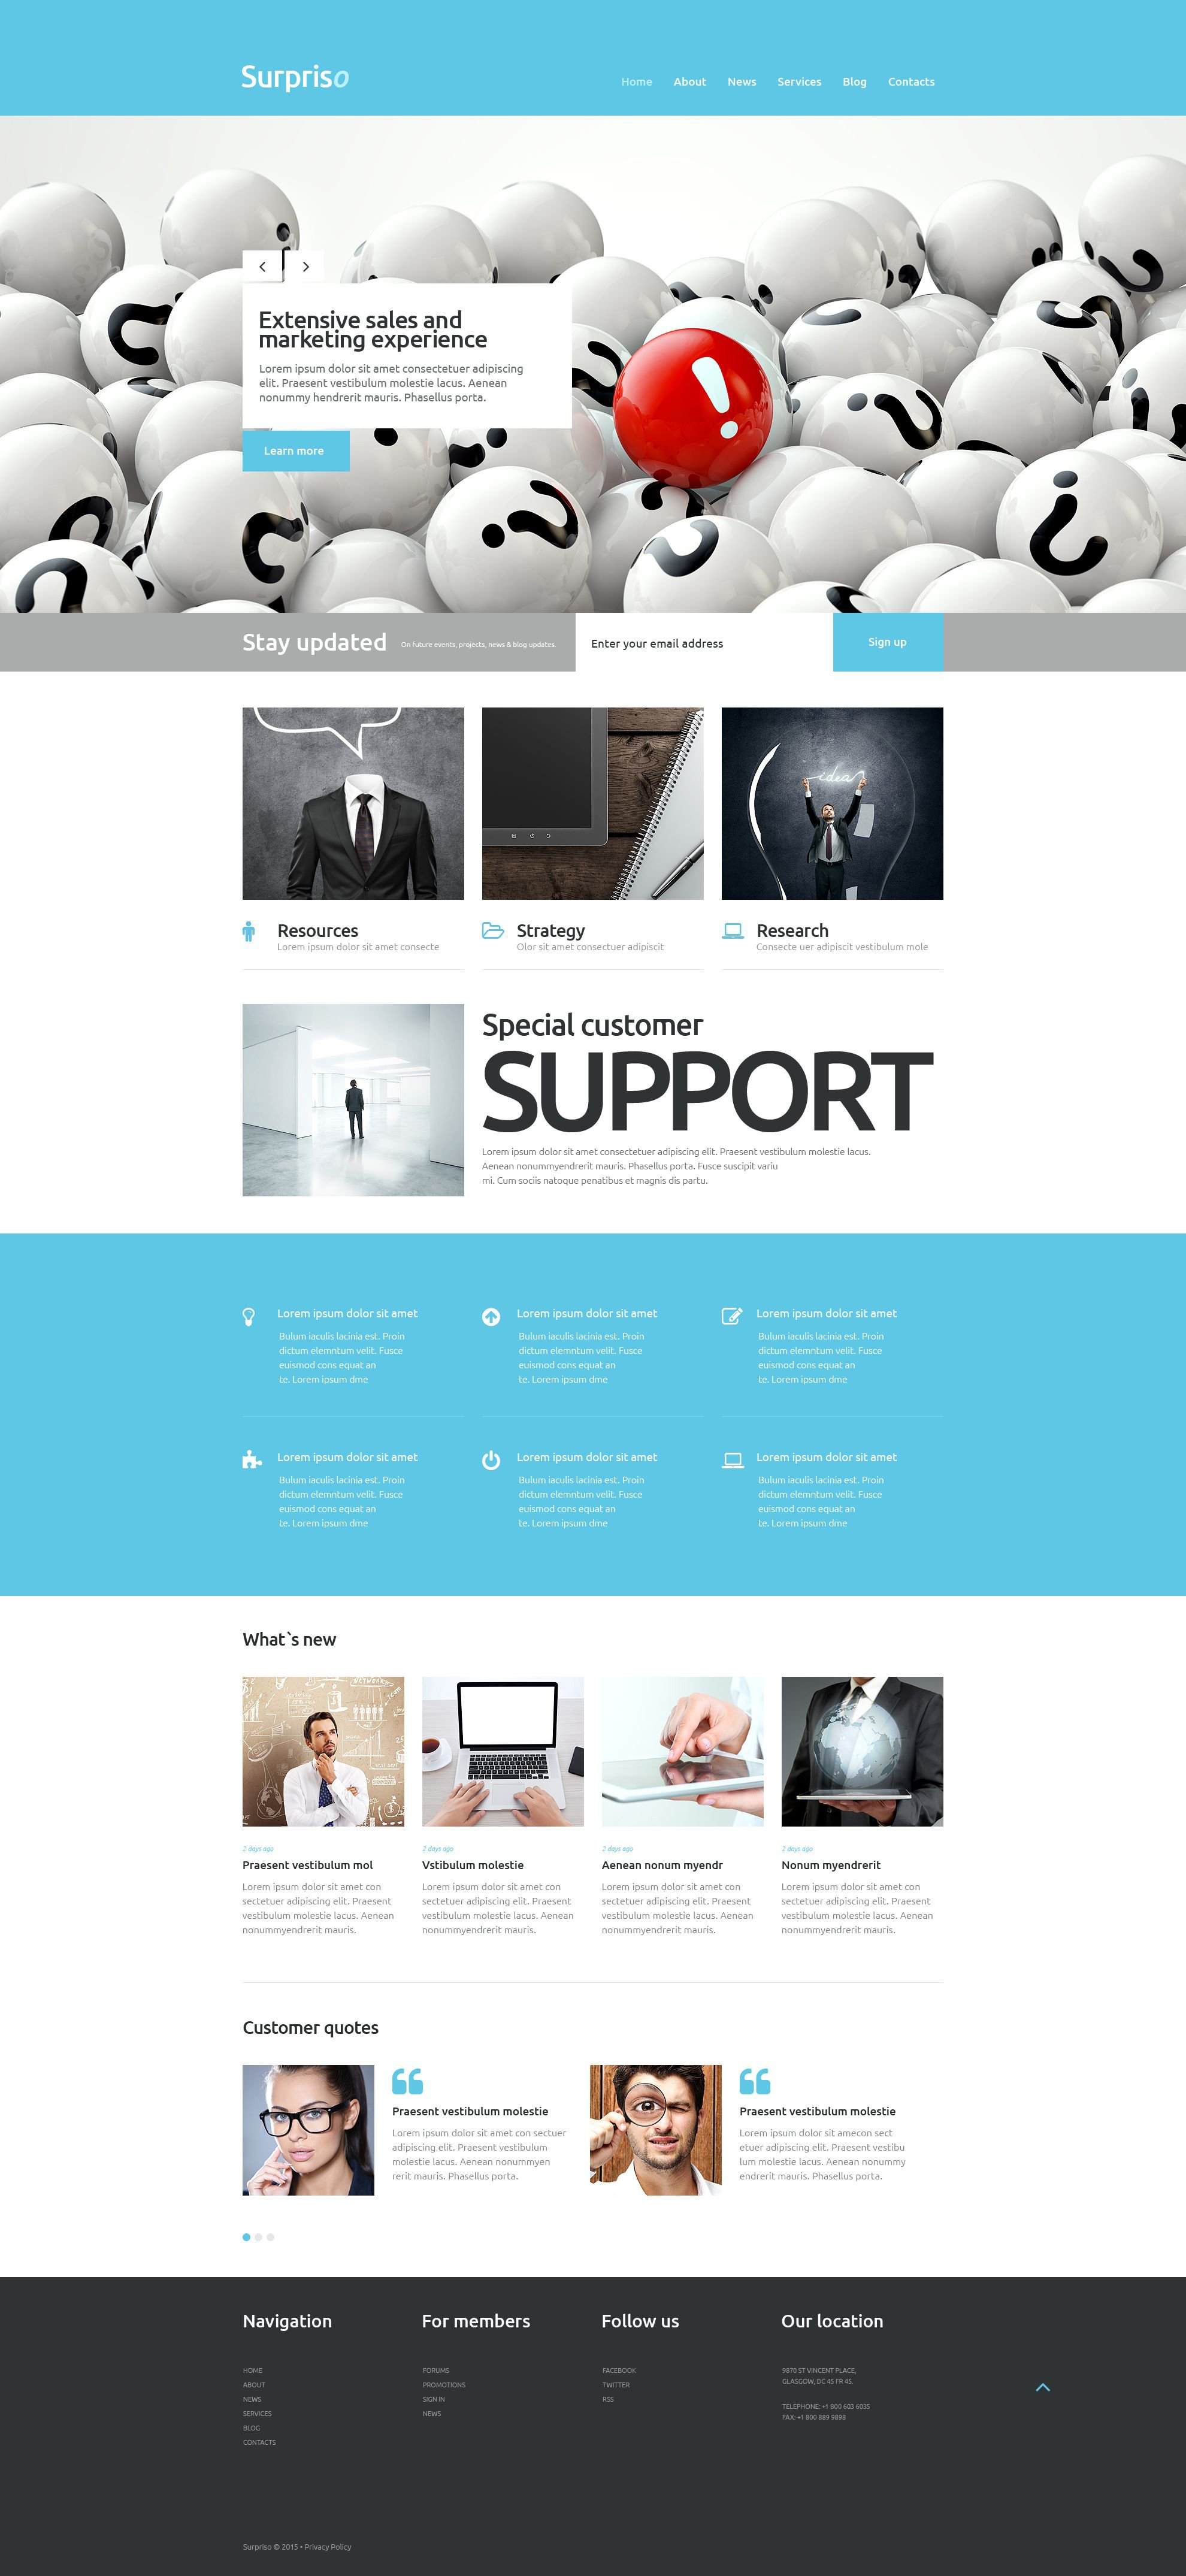 The Surpriso Business WordPress Design 53264, one of the best WordPress themes of its kind (business, most popular), also known as surpriso business WordPress template, success company WordPress template, enterprise solution WordPress template, business WordPress template, industry WordPress template, technical WordPress template, clients WordPress template, customer support WordPress template, automate WordPress template, flow WordPress template, services WordPress template, plug-in WordPress template, flex WordPress template, profile WordPress template, principles WordPress template, web products WordPress template, technology system and related with surpriso business, success company, enterprise solution, business, industry, technical, clients, customer support, automate, flow, services, plug-in, flex, profile, principles, web products, technology system, etc.